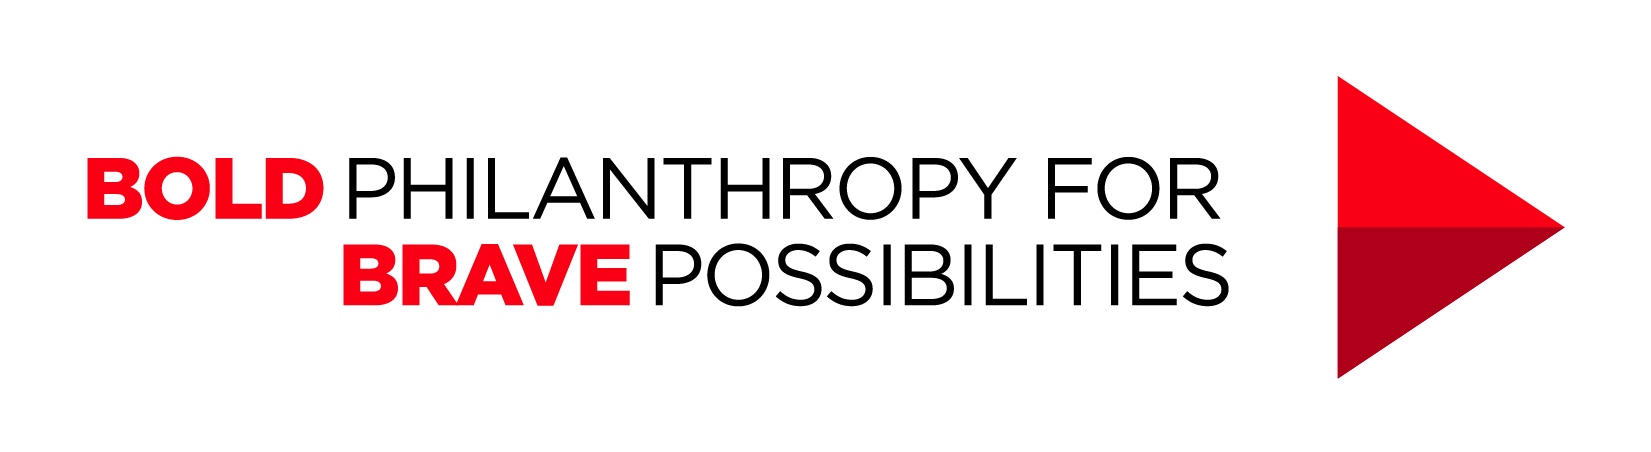 Bold Philanthropy for Brave Possibilities